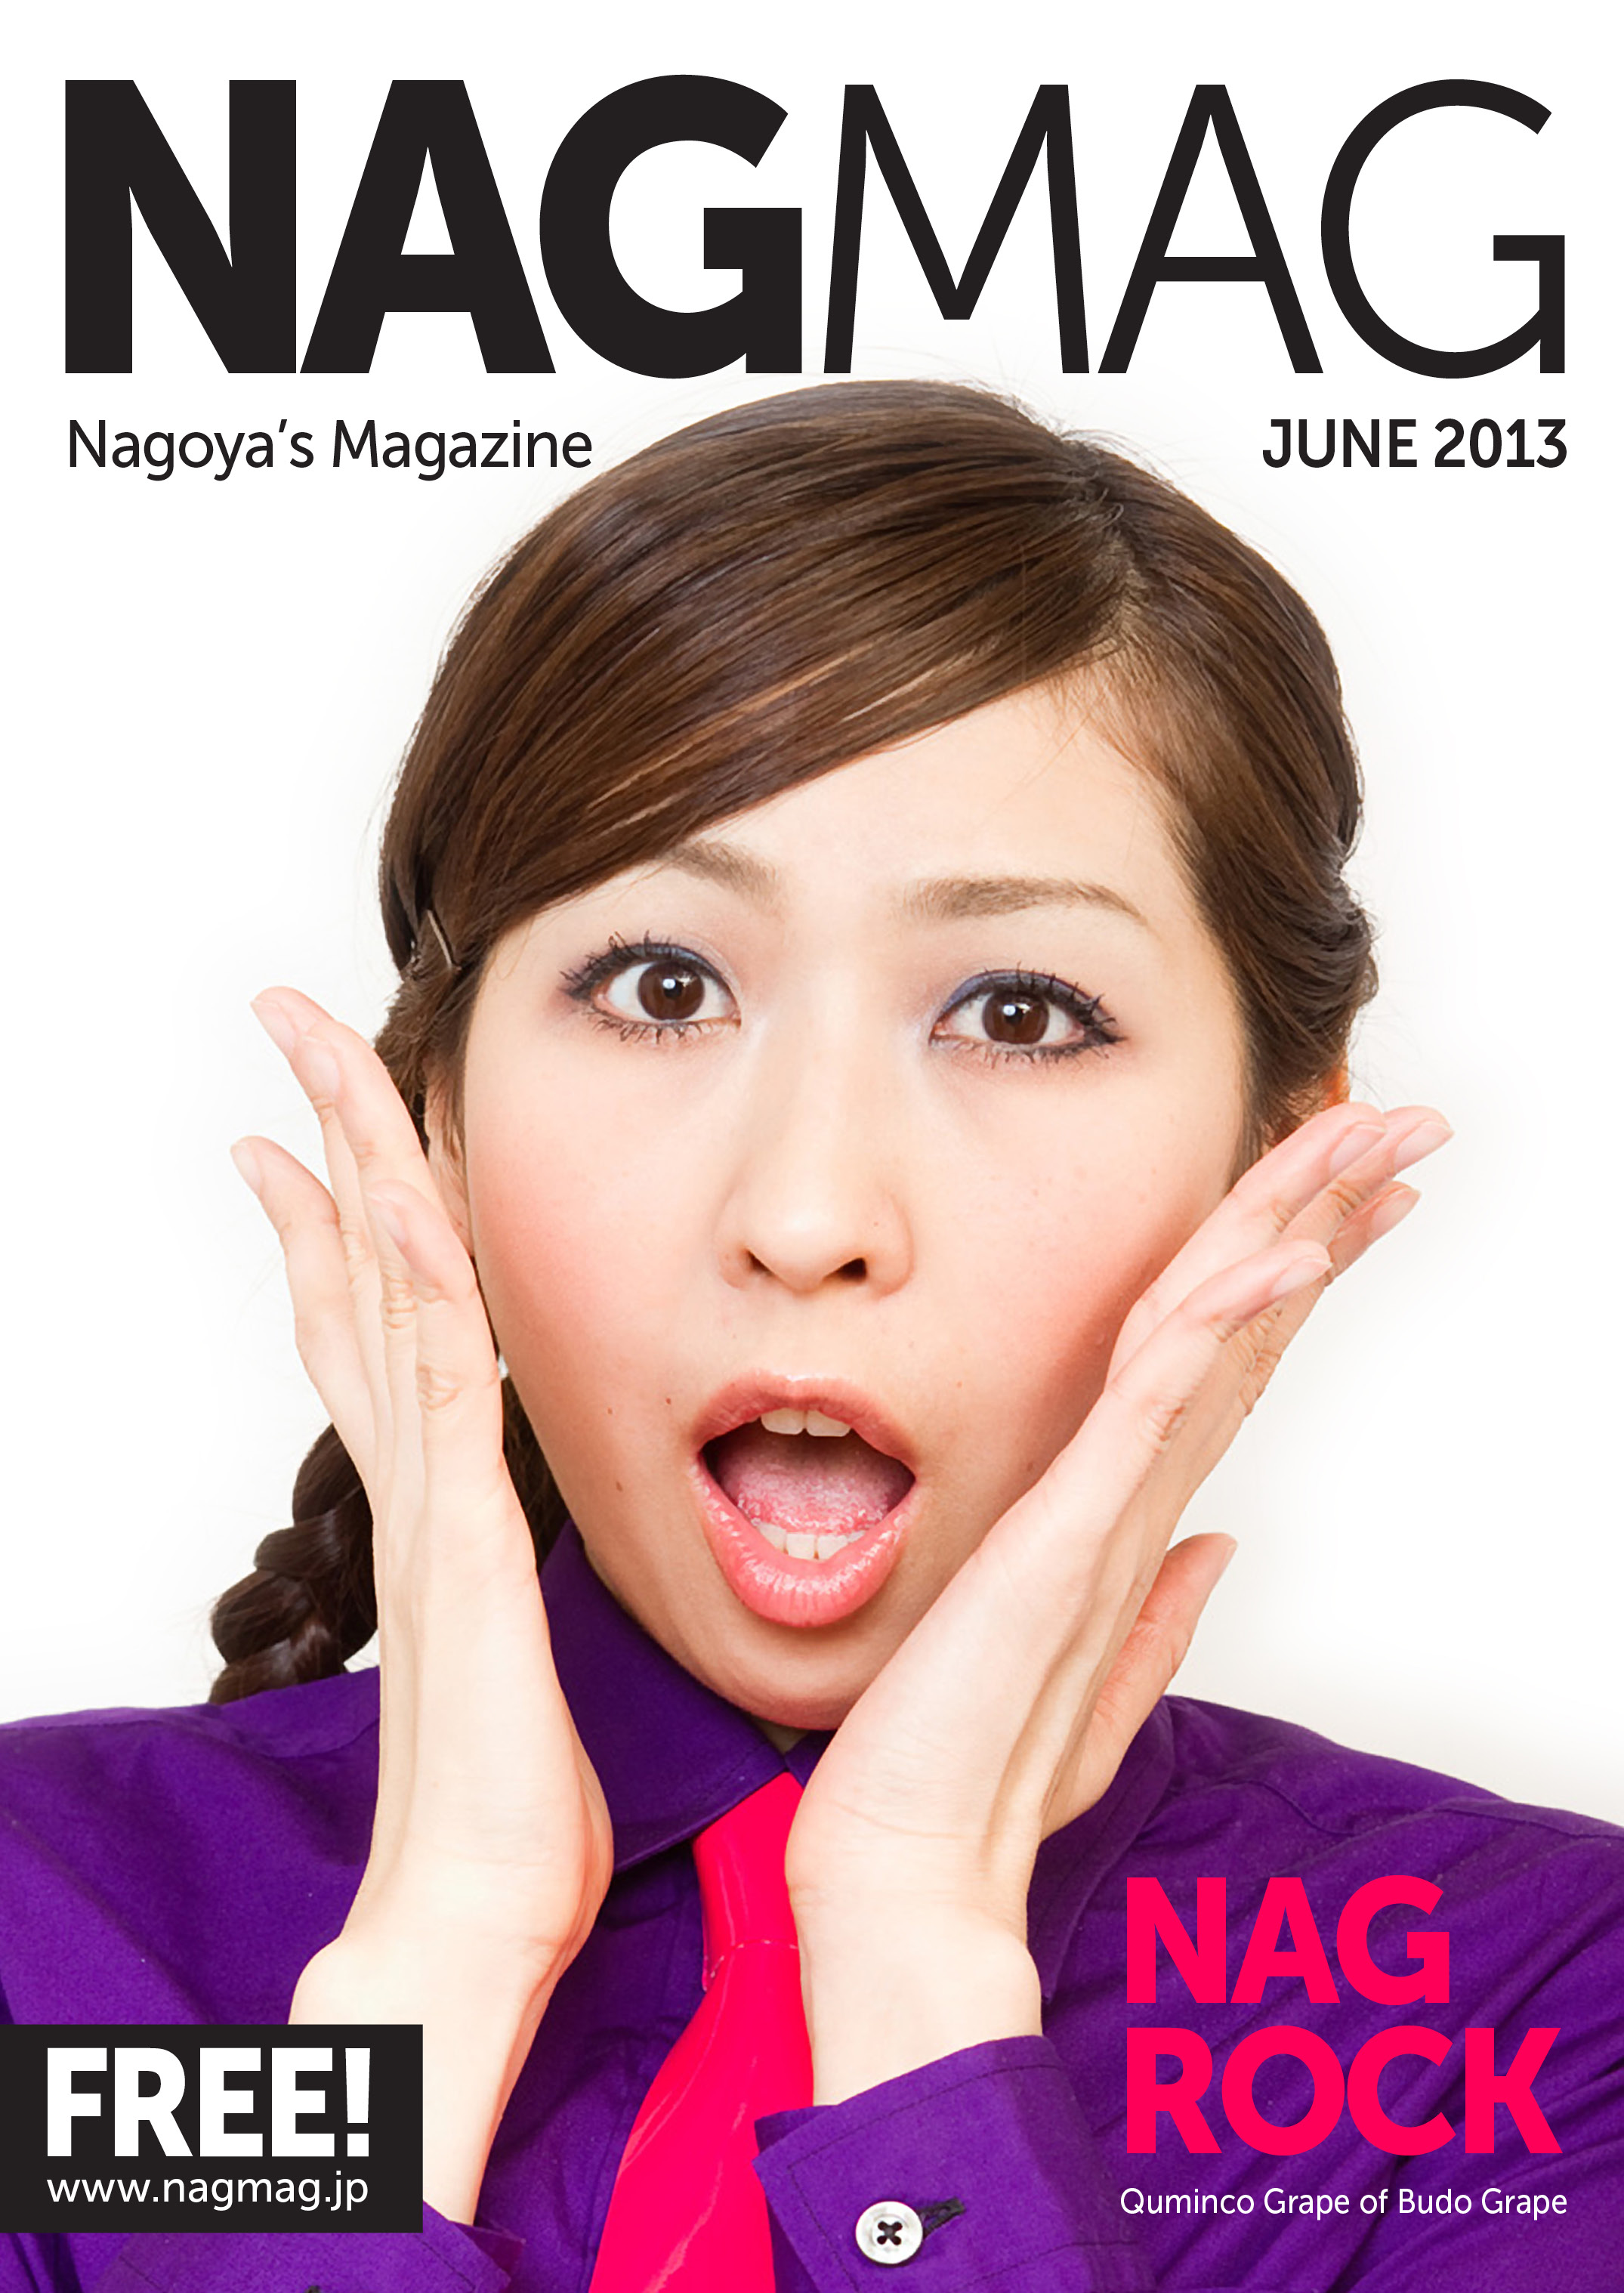 JRock247-Budo-Grape-NagMag-2013-06A